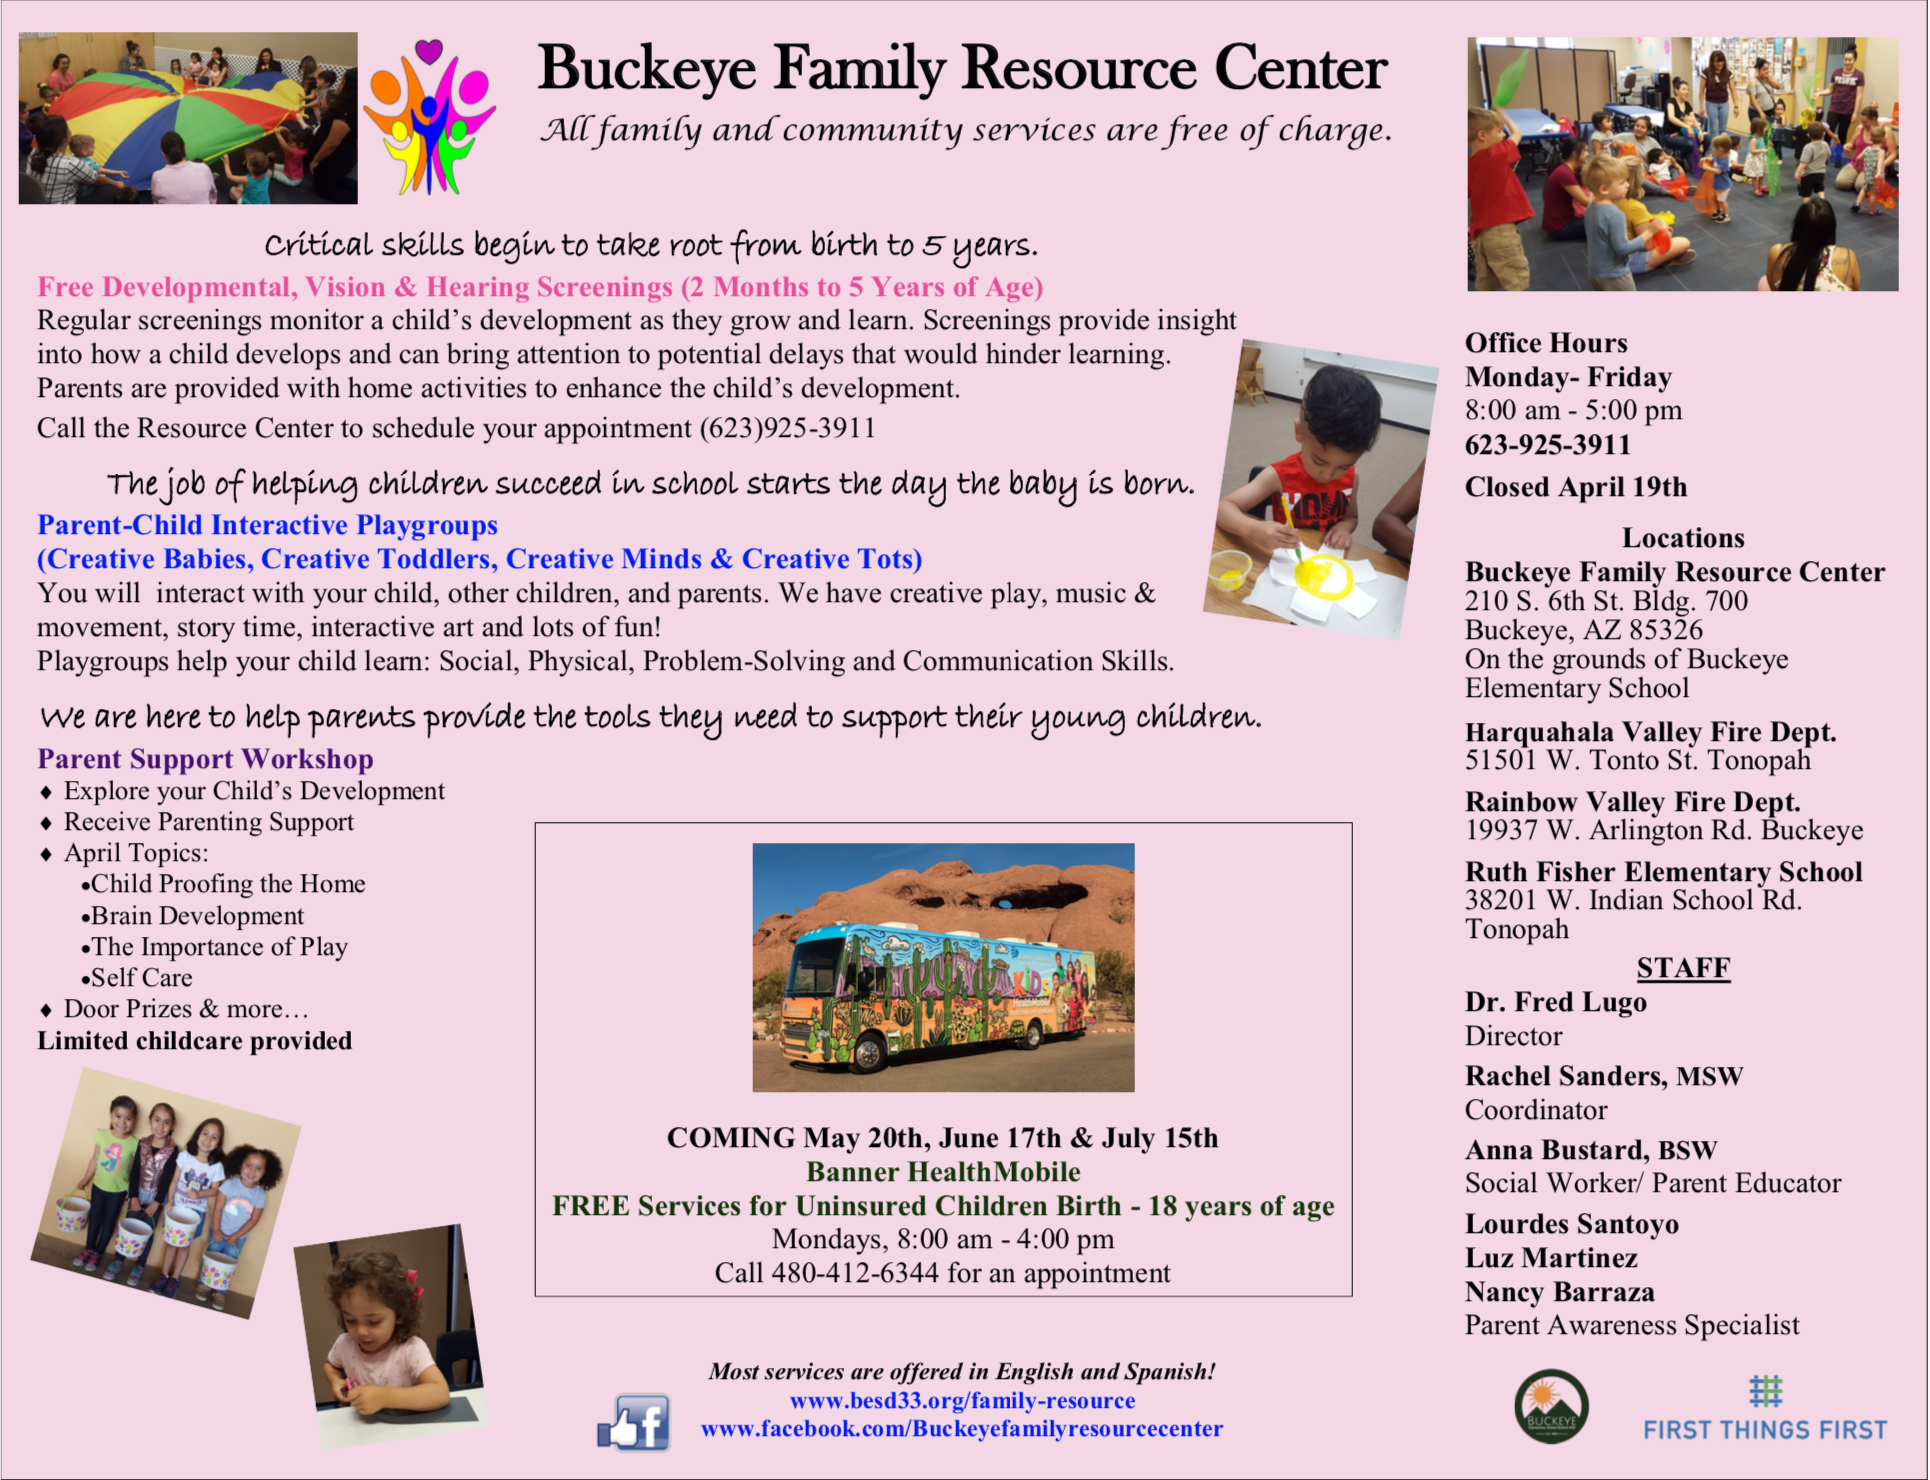 Buckeye Family Resource Center. May 2019 calendar. Attached PDF version link on bottom right side after May back view photo